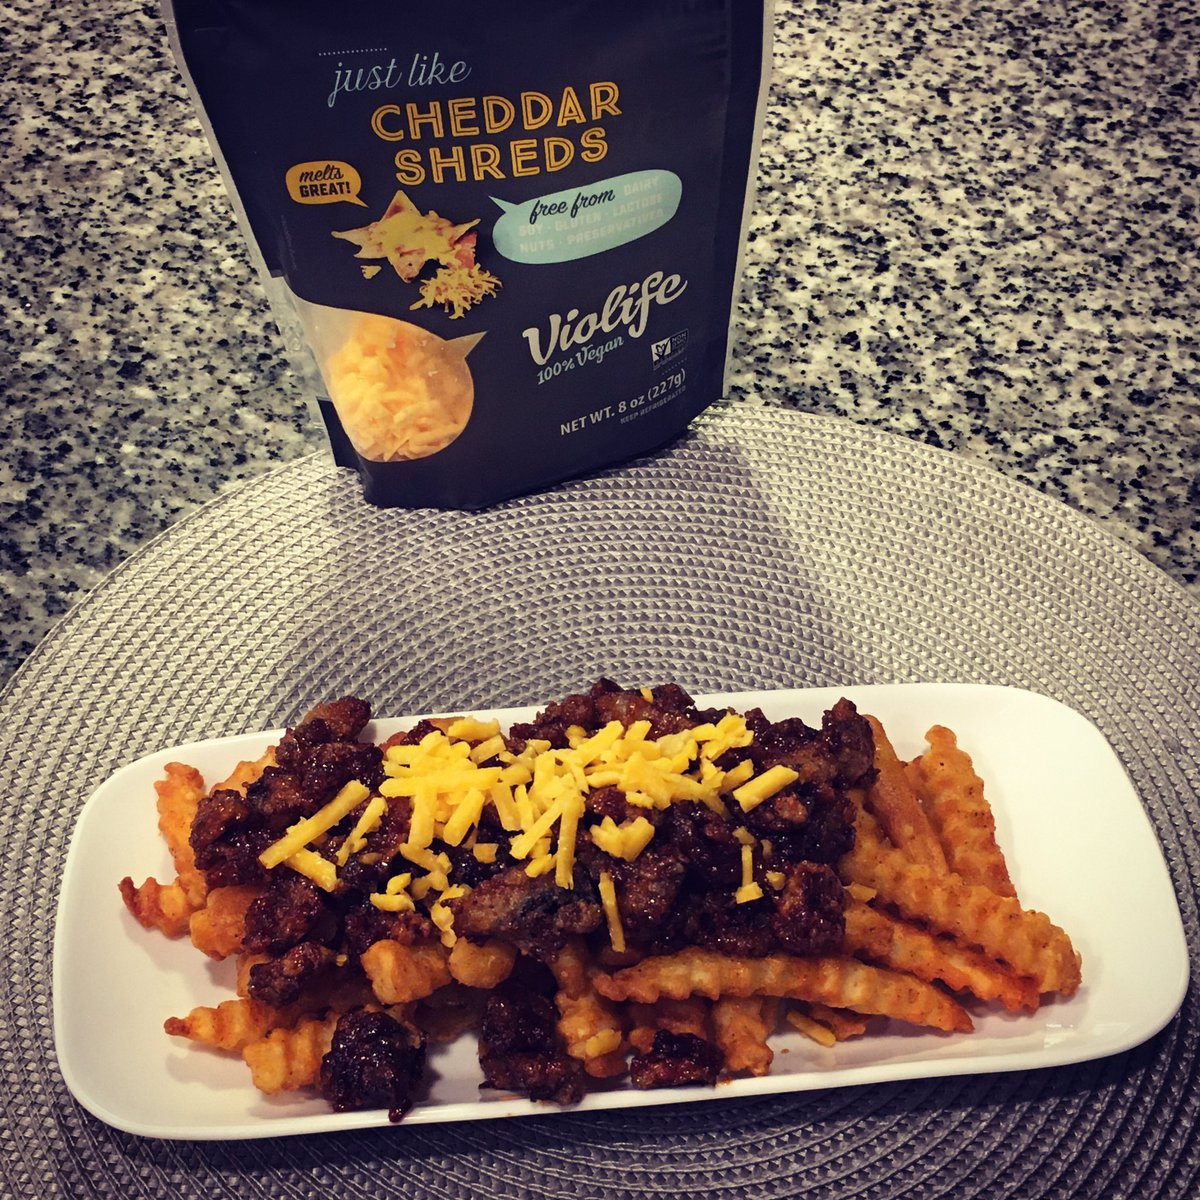 Let's #tgif with some fried #vegan #comfortfood chili cheese fries. Don't forget you can vote once daily for free to get me to the top 10 👉🏽👉🏽👉🏽  Link also in bio #cheflife #favchef #favchef2021 #violifecheese